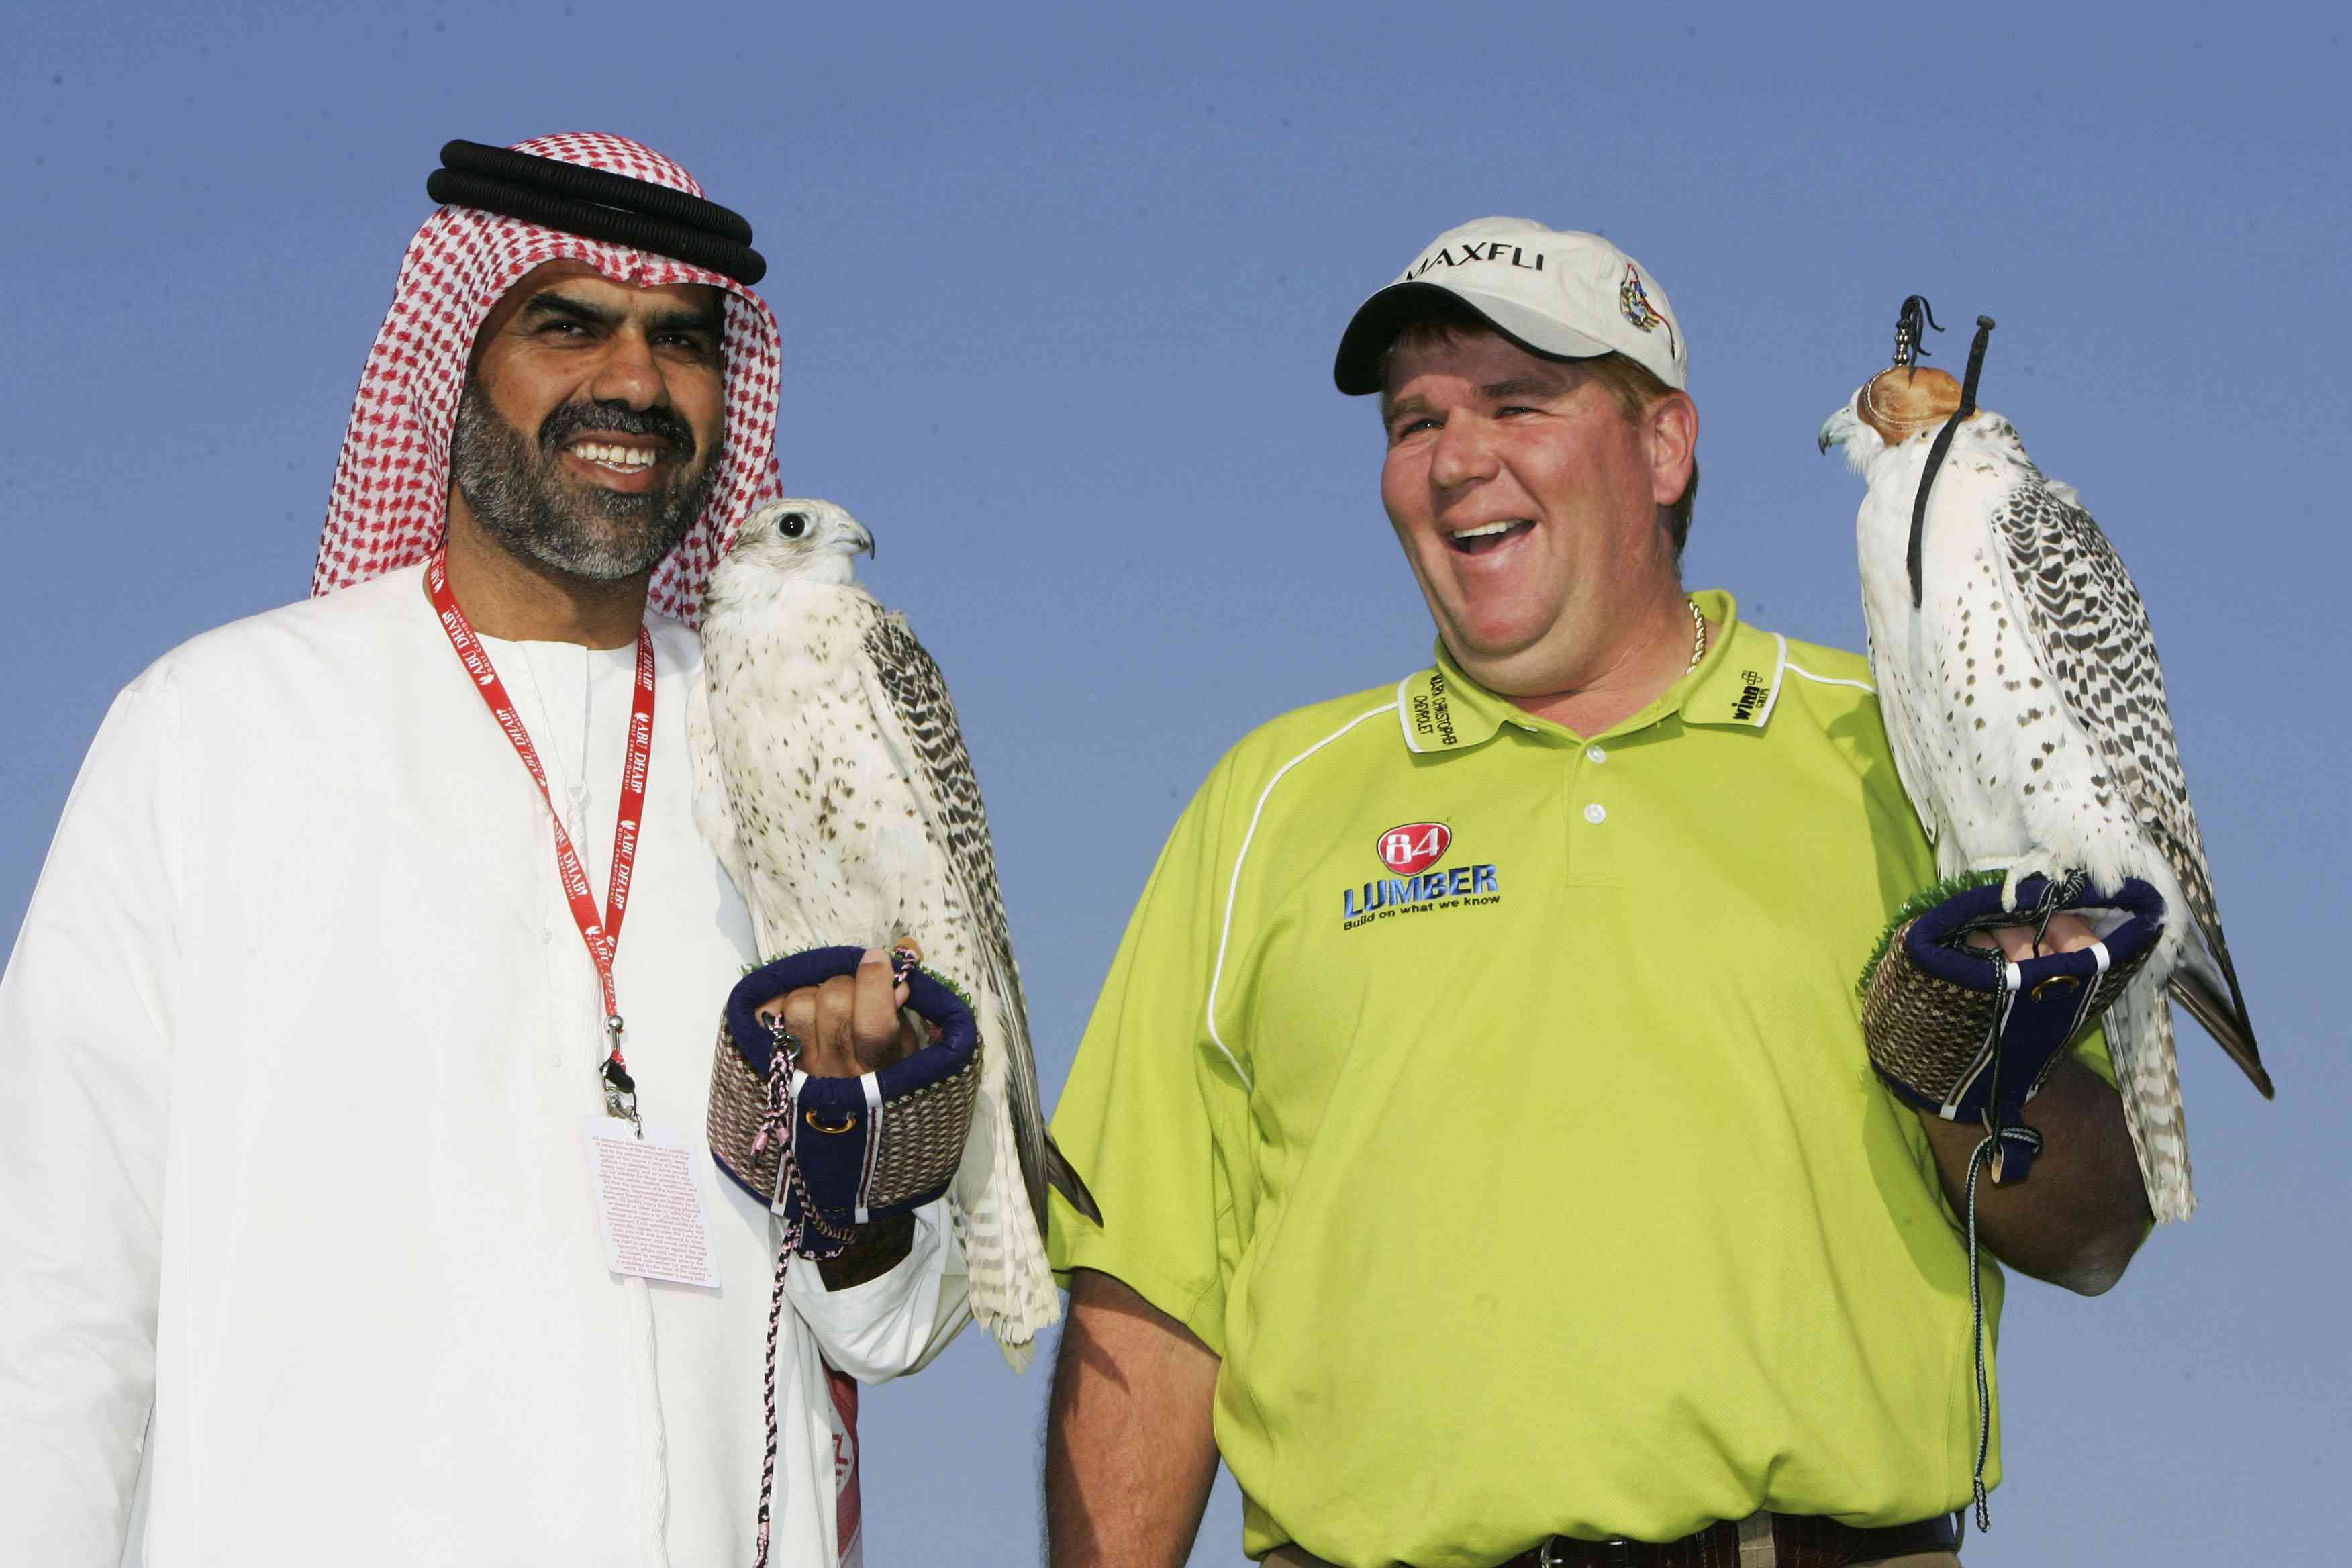 ohn Daly of the USA holds a falcon during a falcon show as a preview for the Abu Dhabi Golf Championship on the National Course at Abu Dhabi Golf Club on January 17, 2006